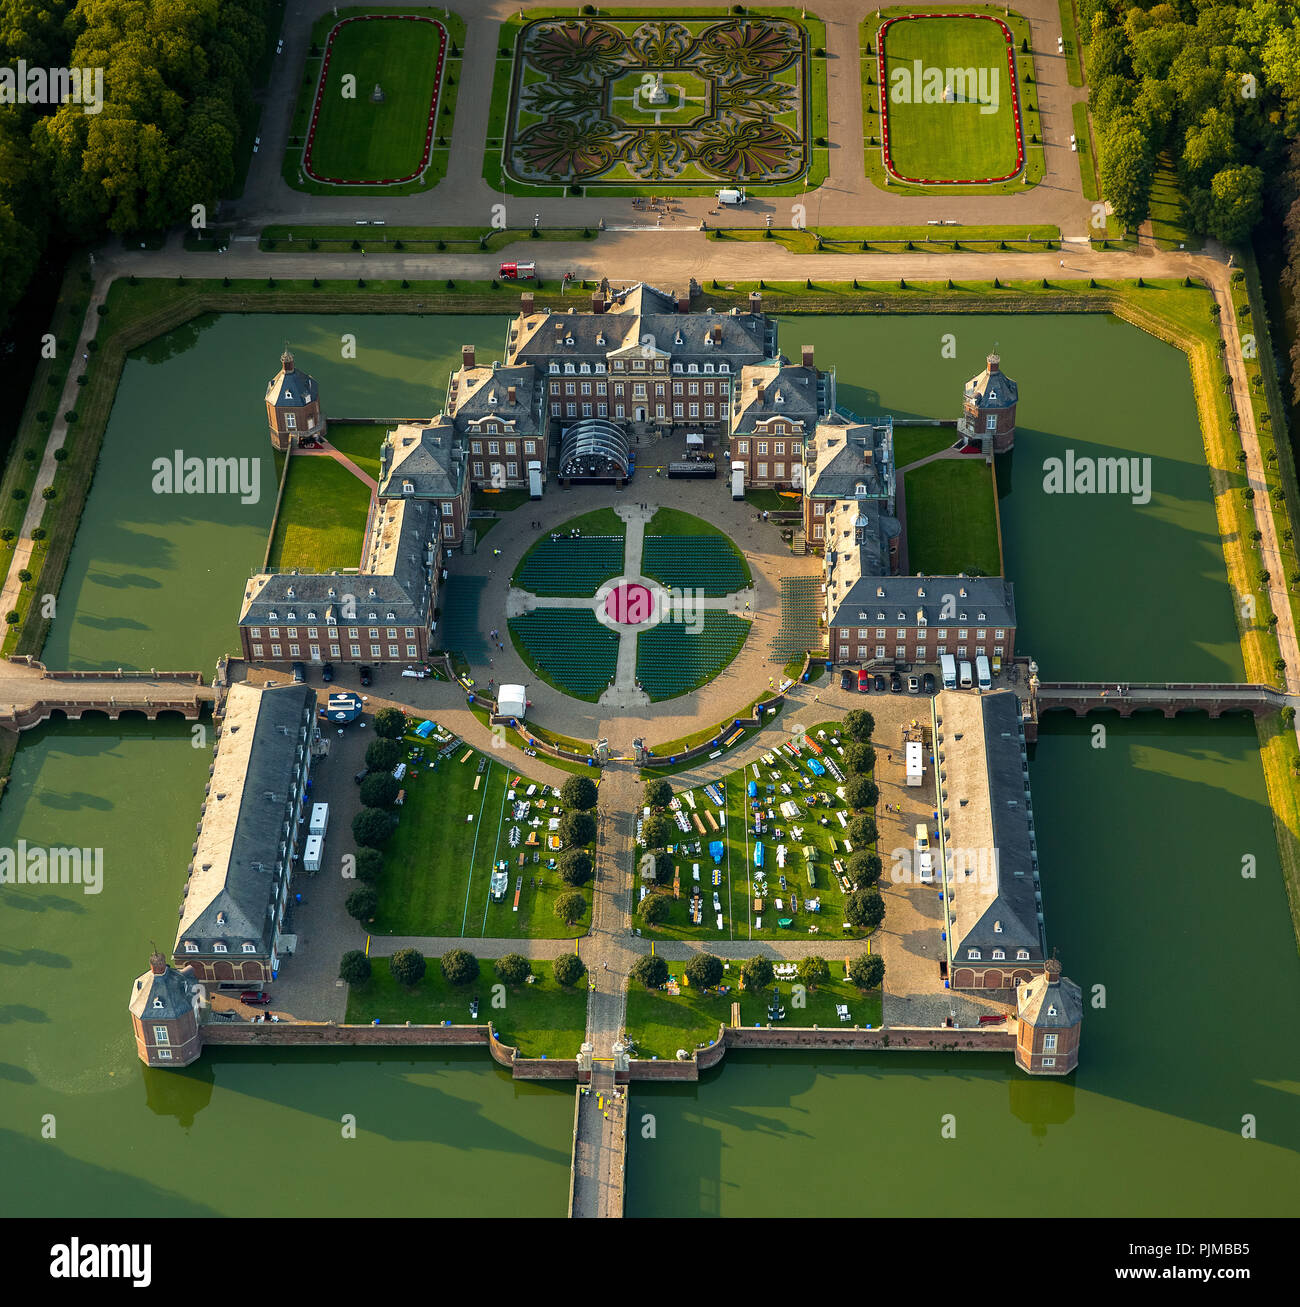 Classical open-air spectacle, Night of the Ten Thousand Candles at the castle in Nordkirchen, Baroque palace, Baroque garden, moated castle, Versailles of Münsterland, Gräften, Nordkirchen, Münsterland, North Rhine-Westphalia, Germany - Stock Image